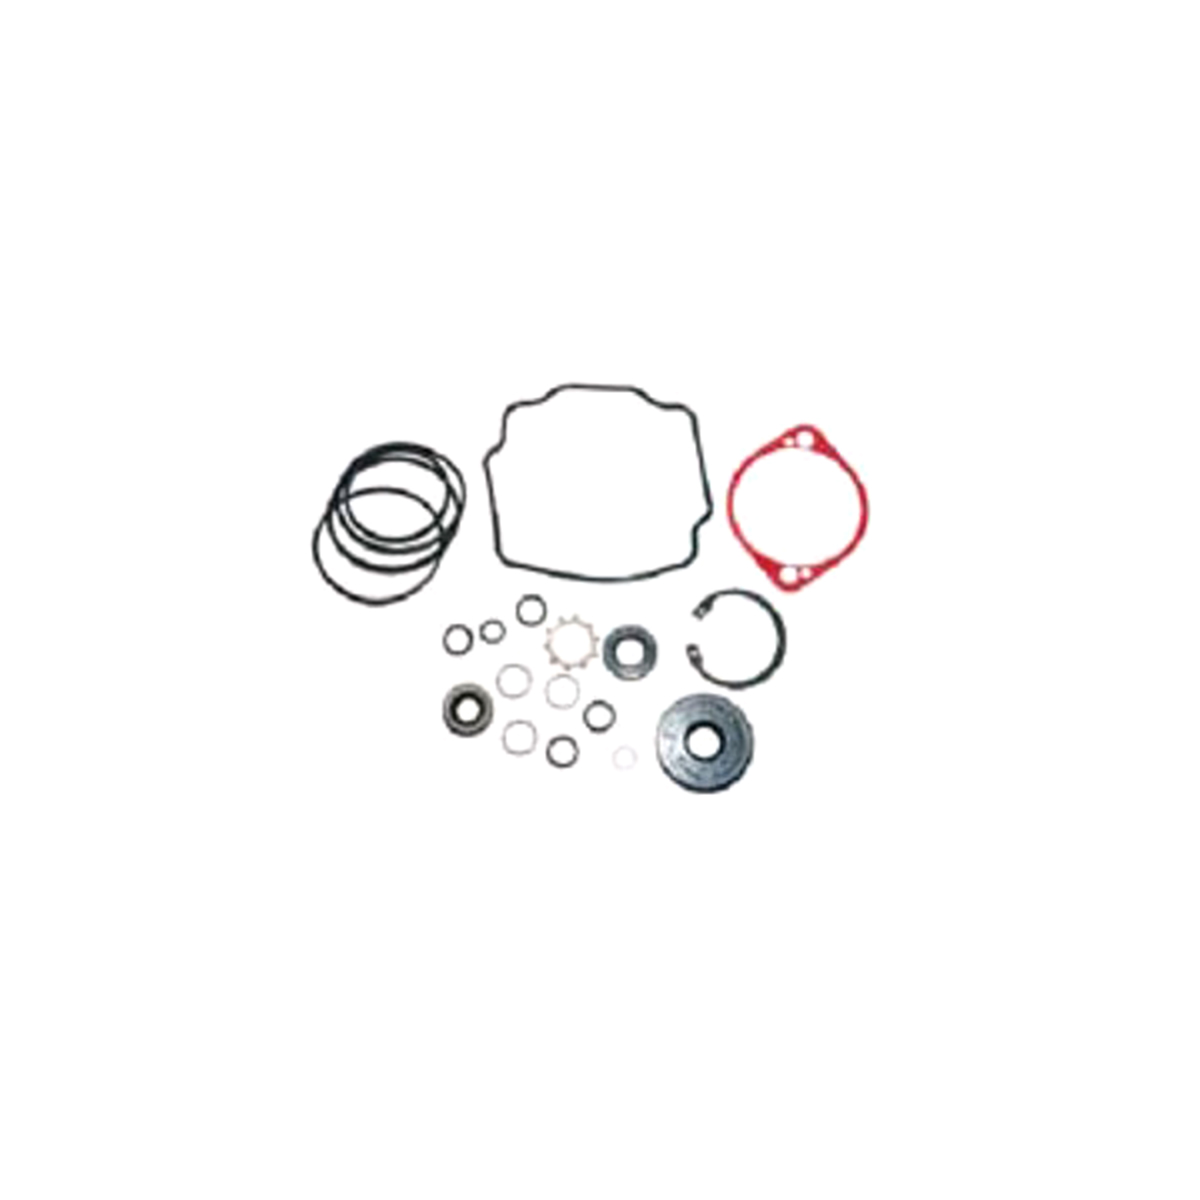 901171 Dixie Chopper Seal Kit 16A Pump Hydro-Gear